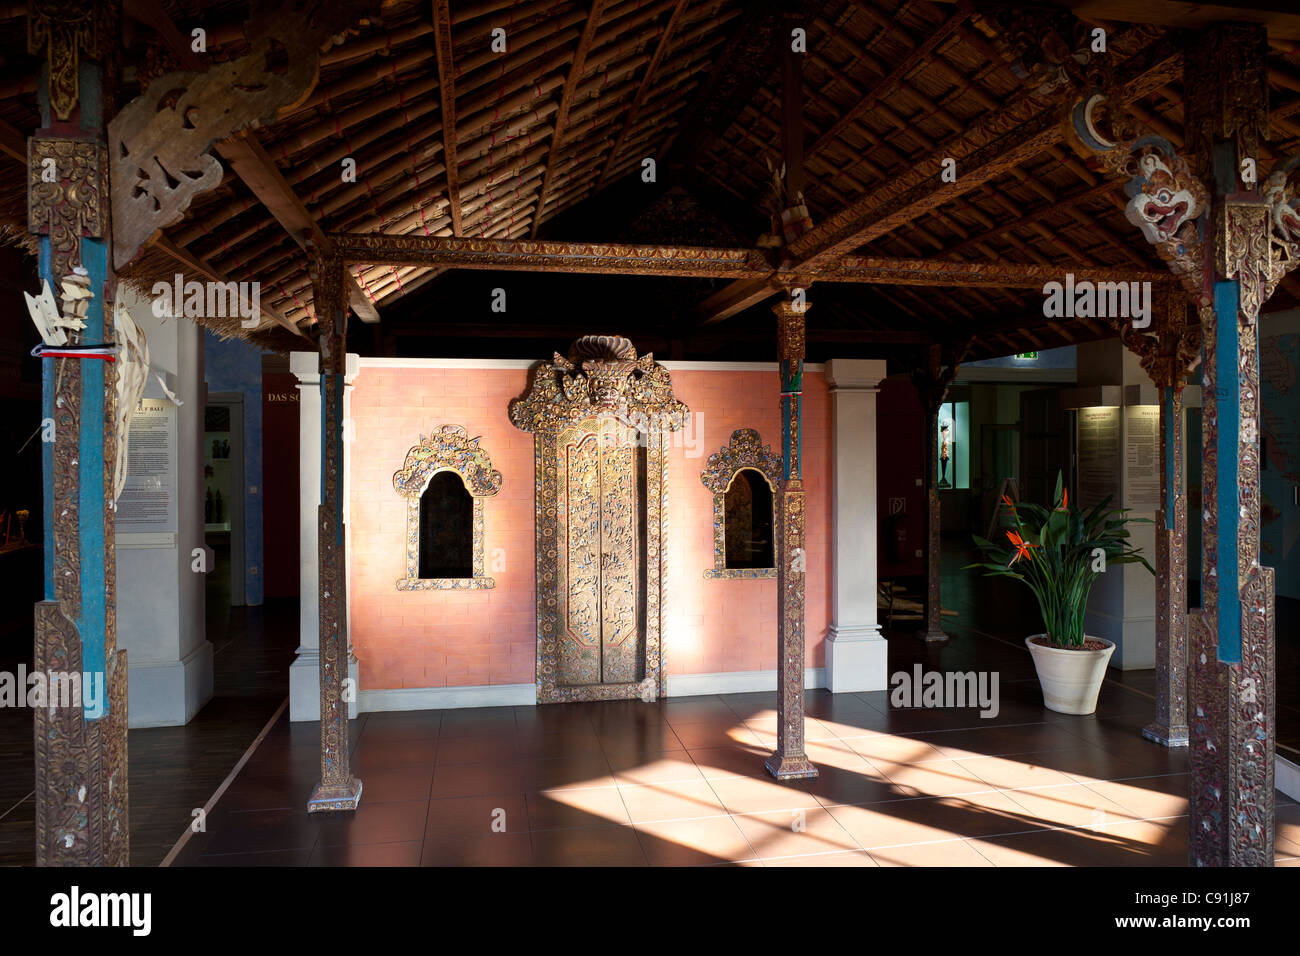 Museum of Ethnology Hamburg, Bali exhibiton, hanseatic city of Hamburg, Germany, Europe - Stock Image